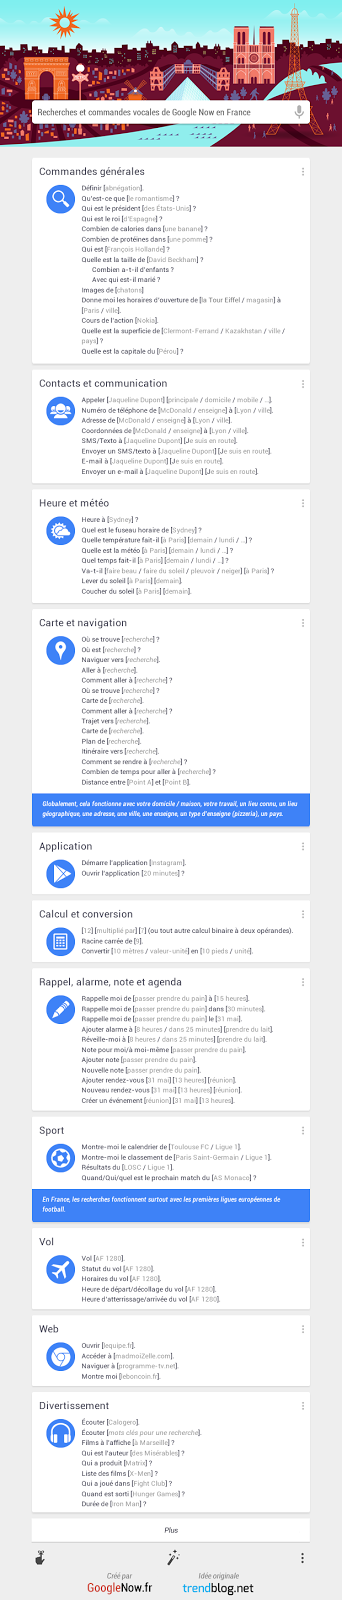 Commandes vocales de Google Now en français pour iOS et Android